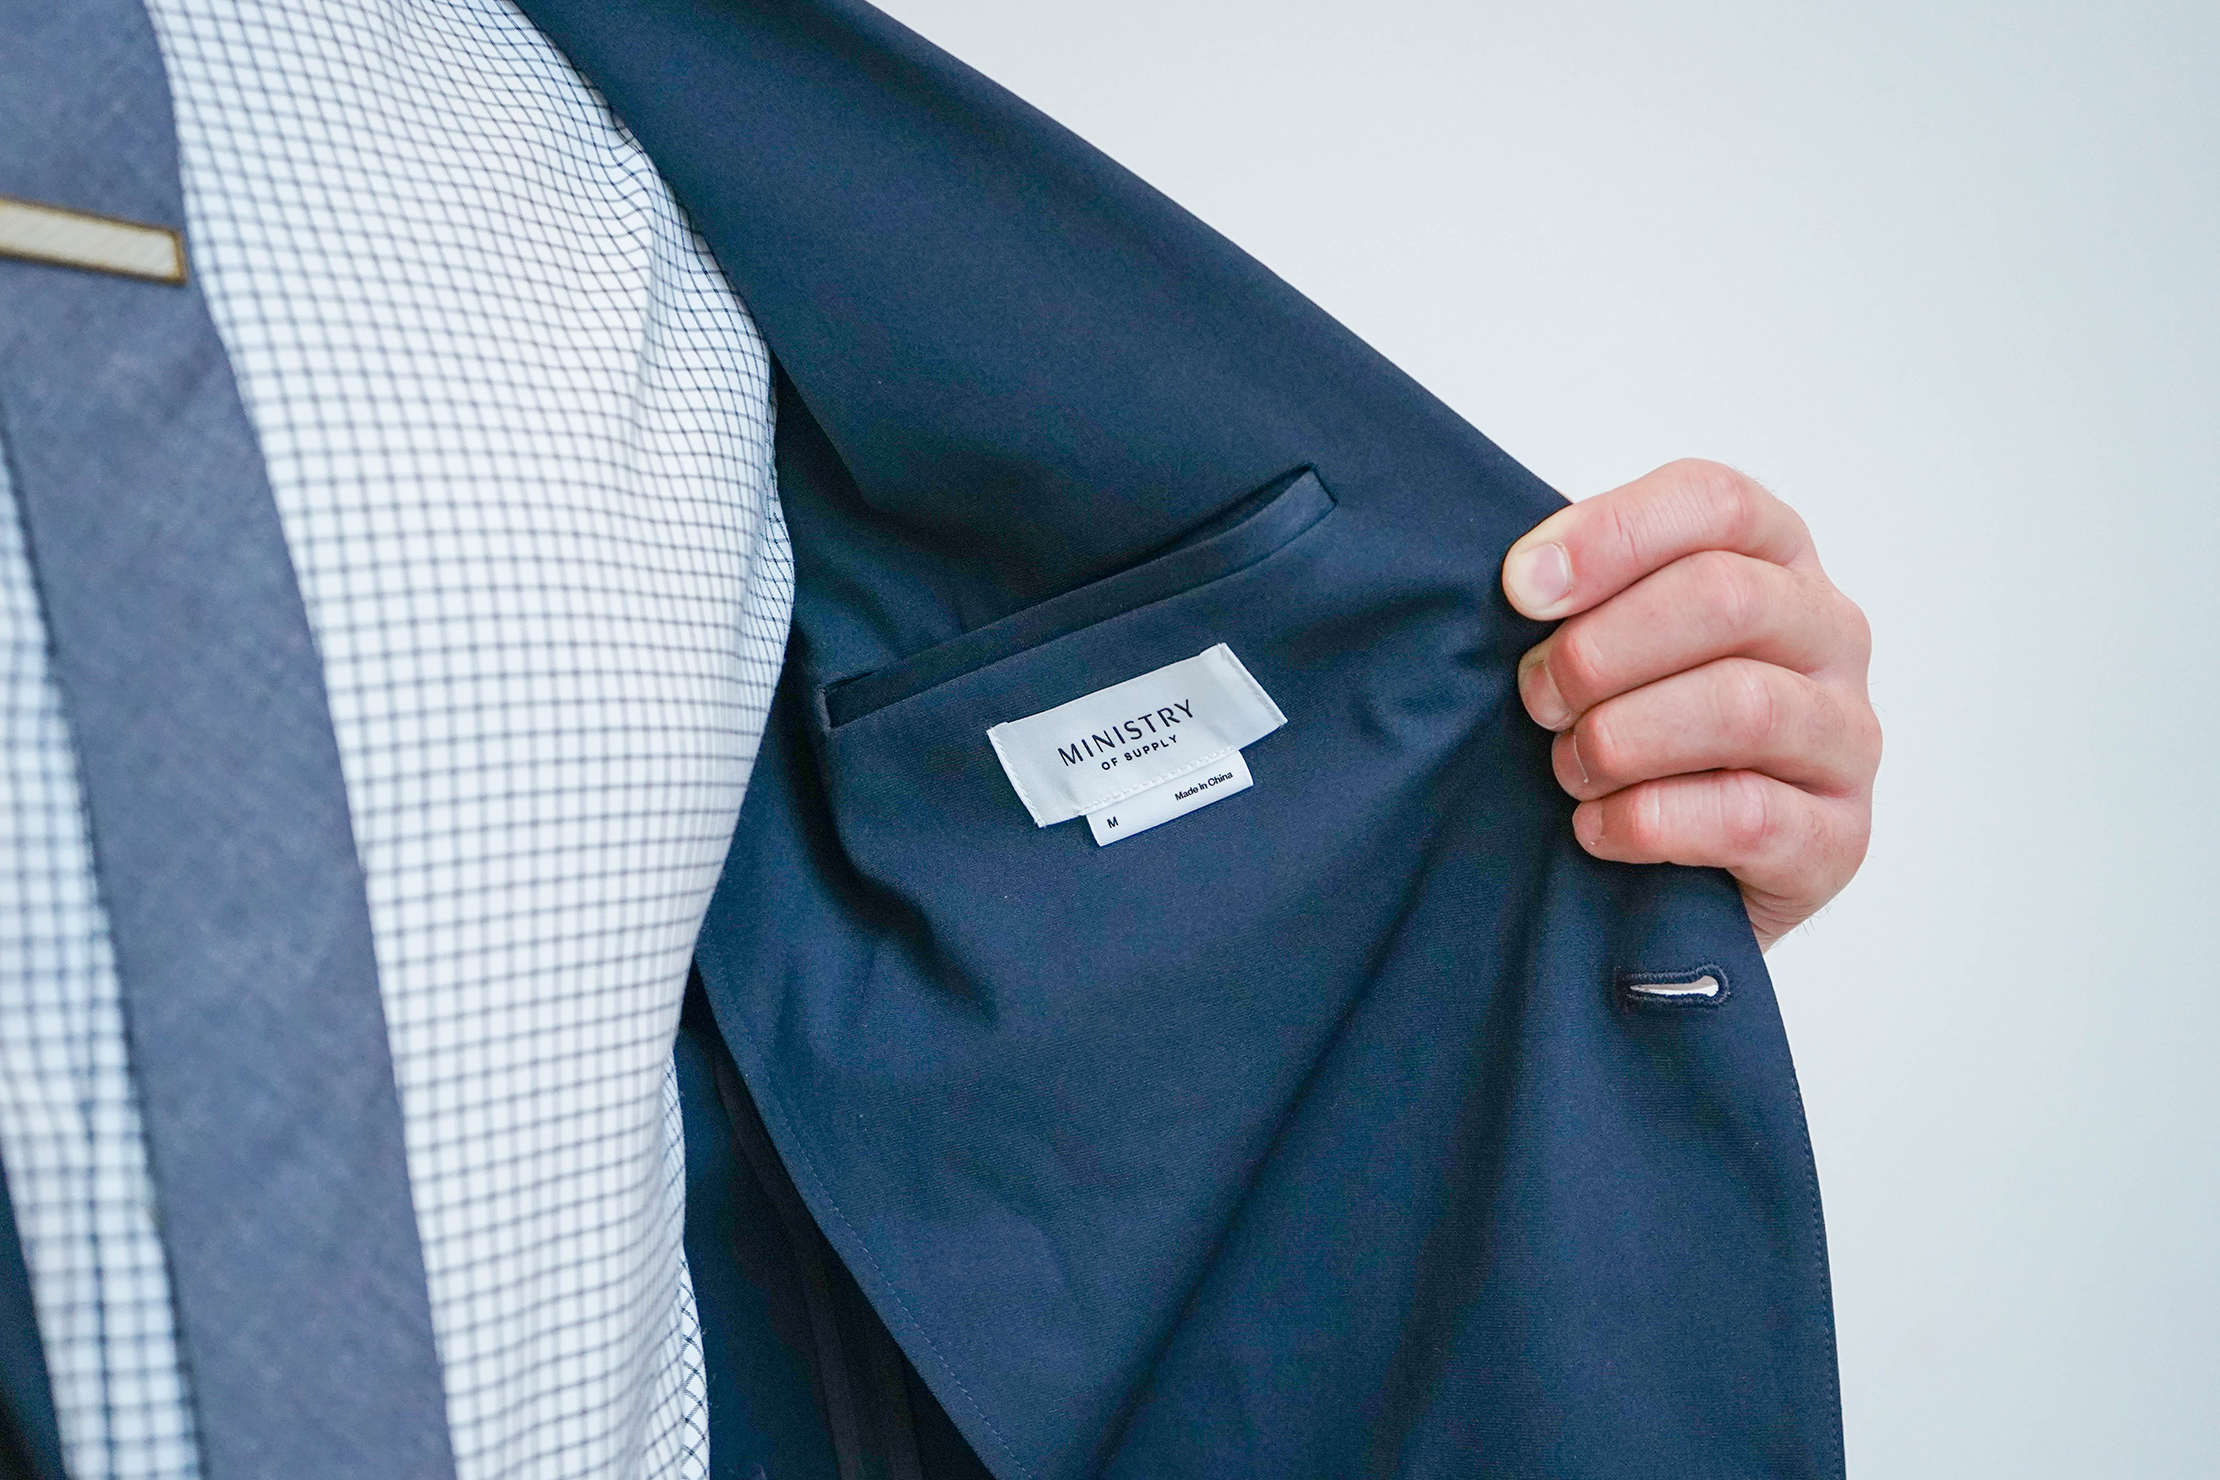 Ministry Of Supply Kinetic Suit Inside Pocket